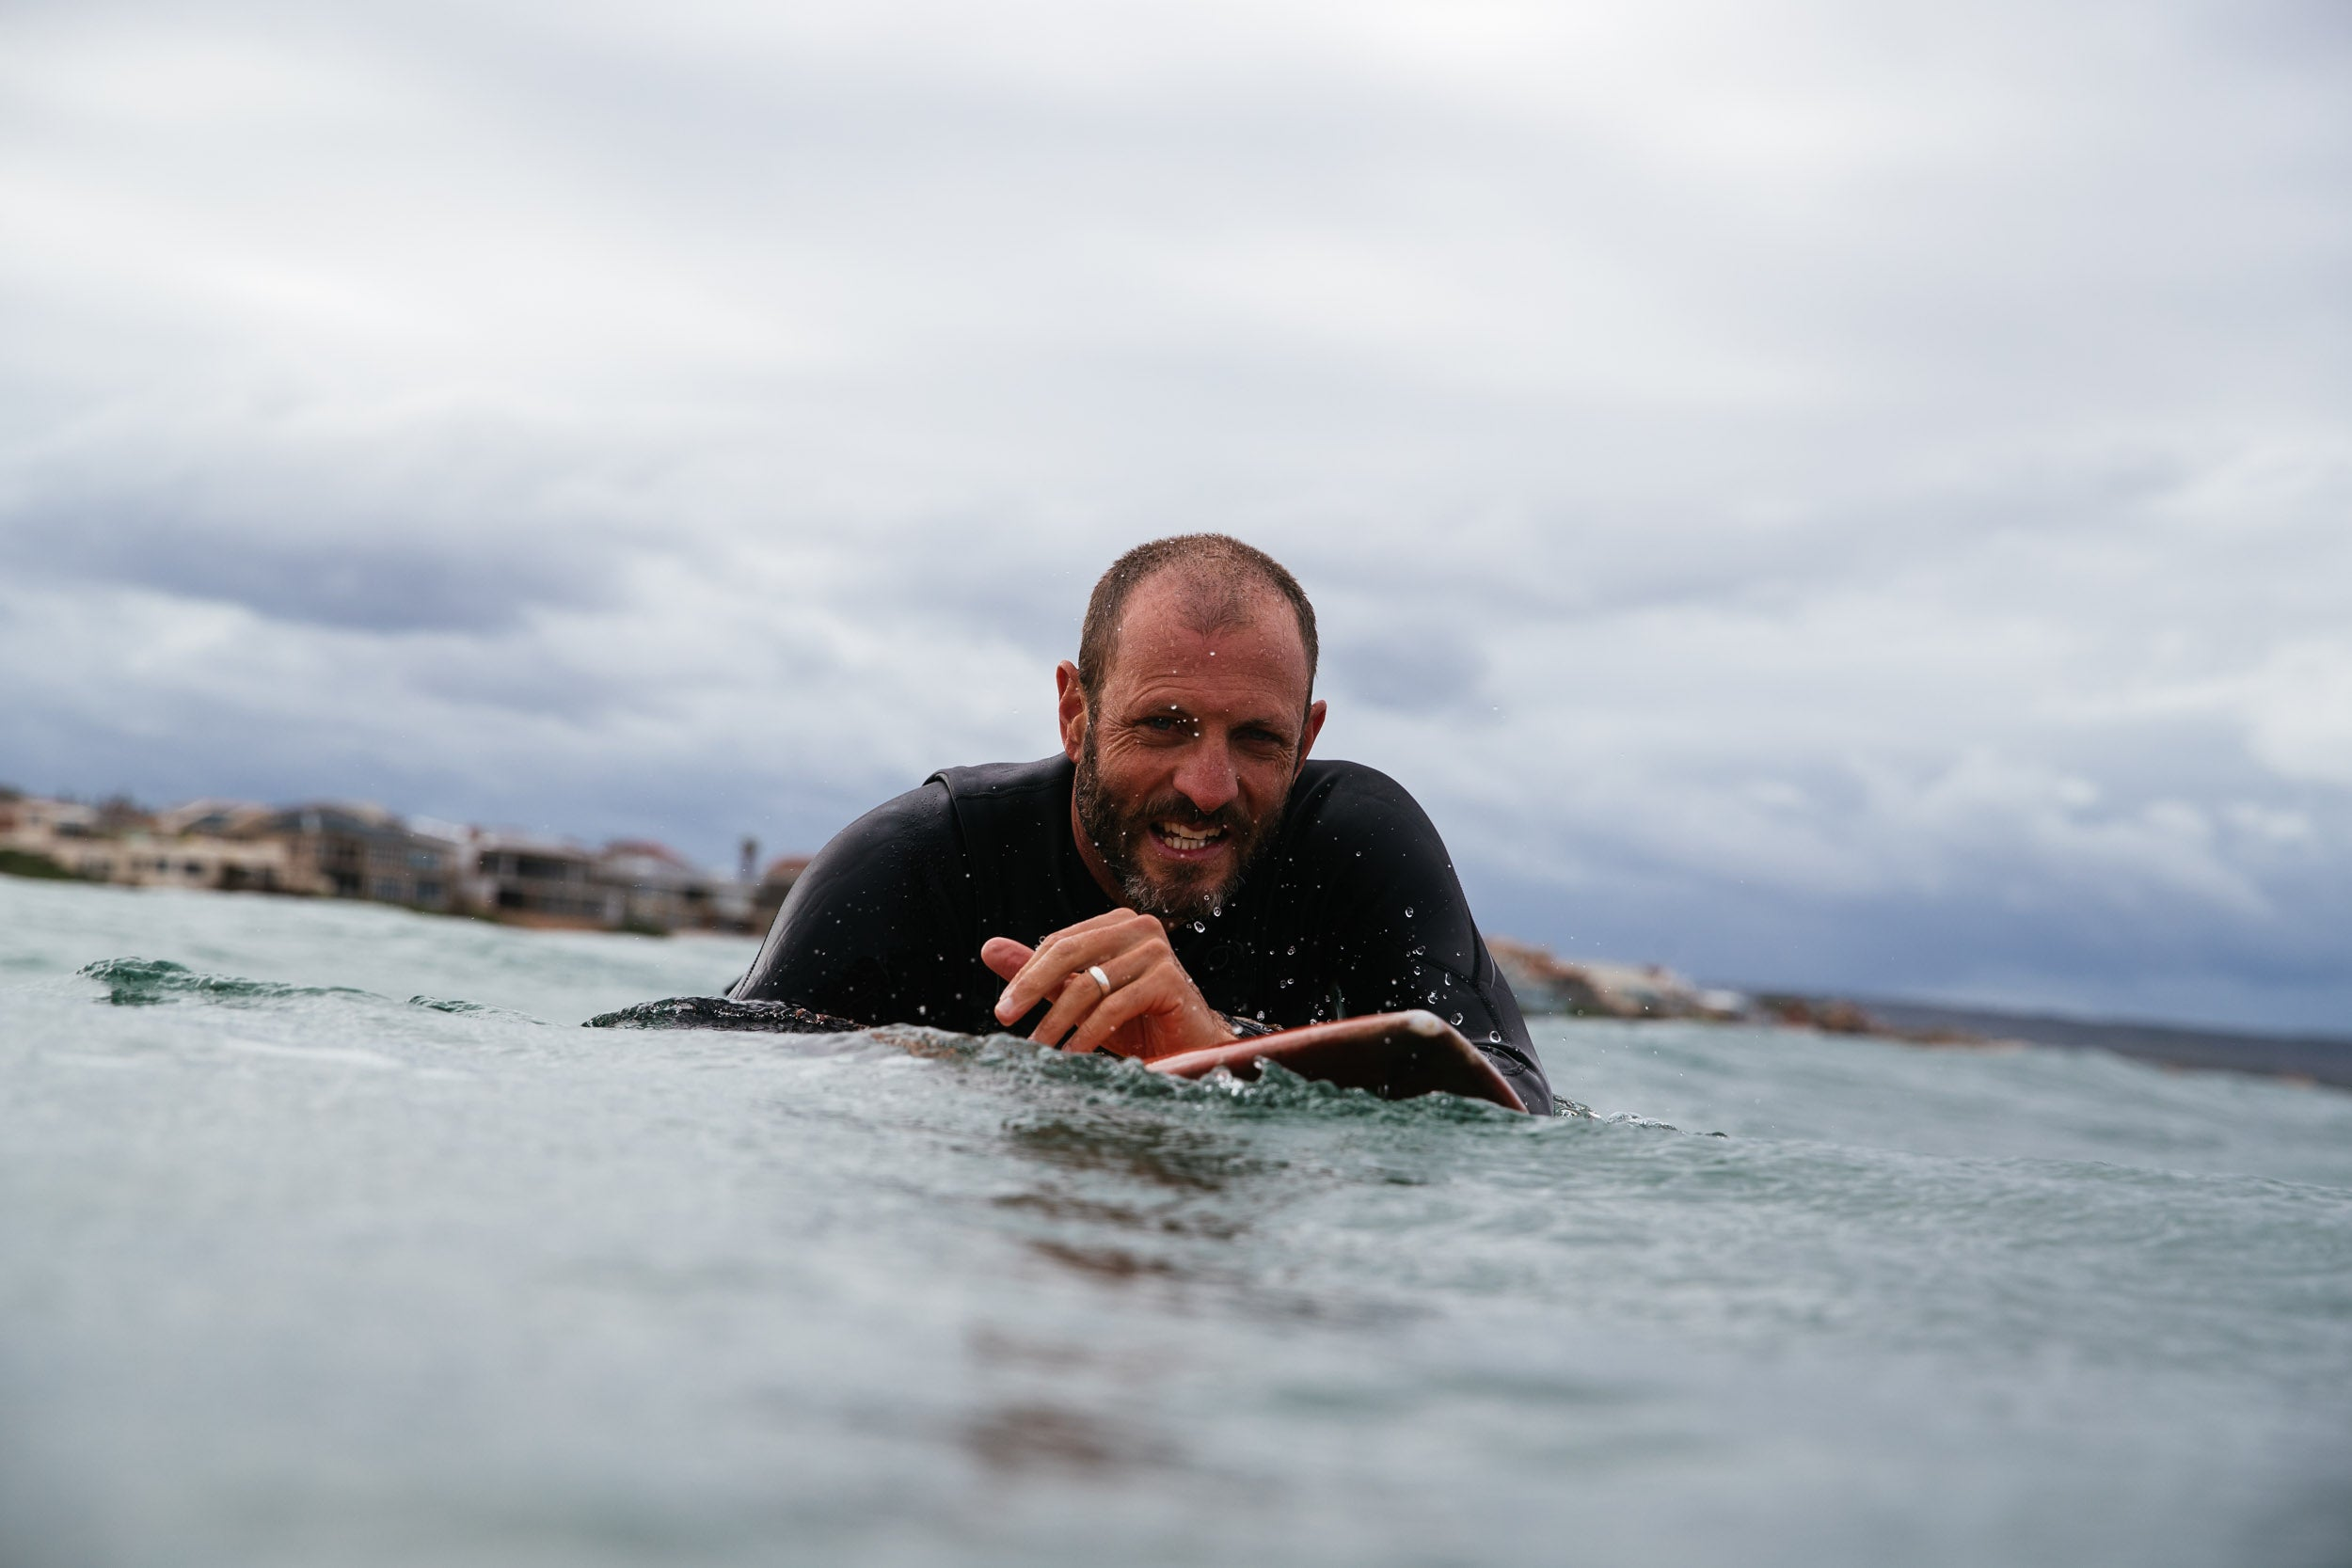 British Cold Water Surf Company Finisterre Launch The Anatis' Water-Repellent Jean British Cold Water Surf Company Finisterre Launch The Anatis' Water-Repellent Jean new foto